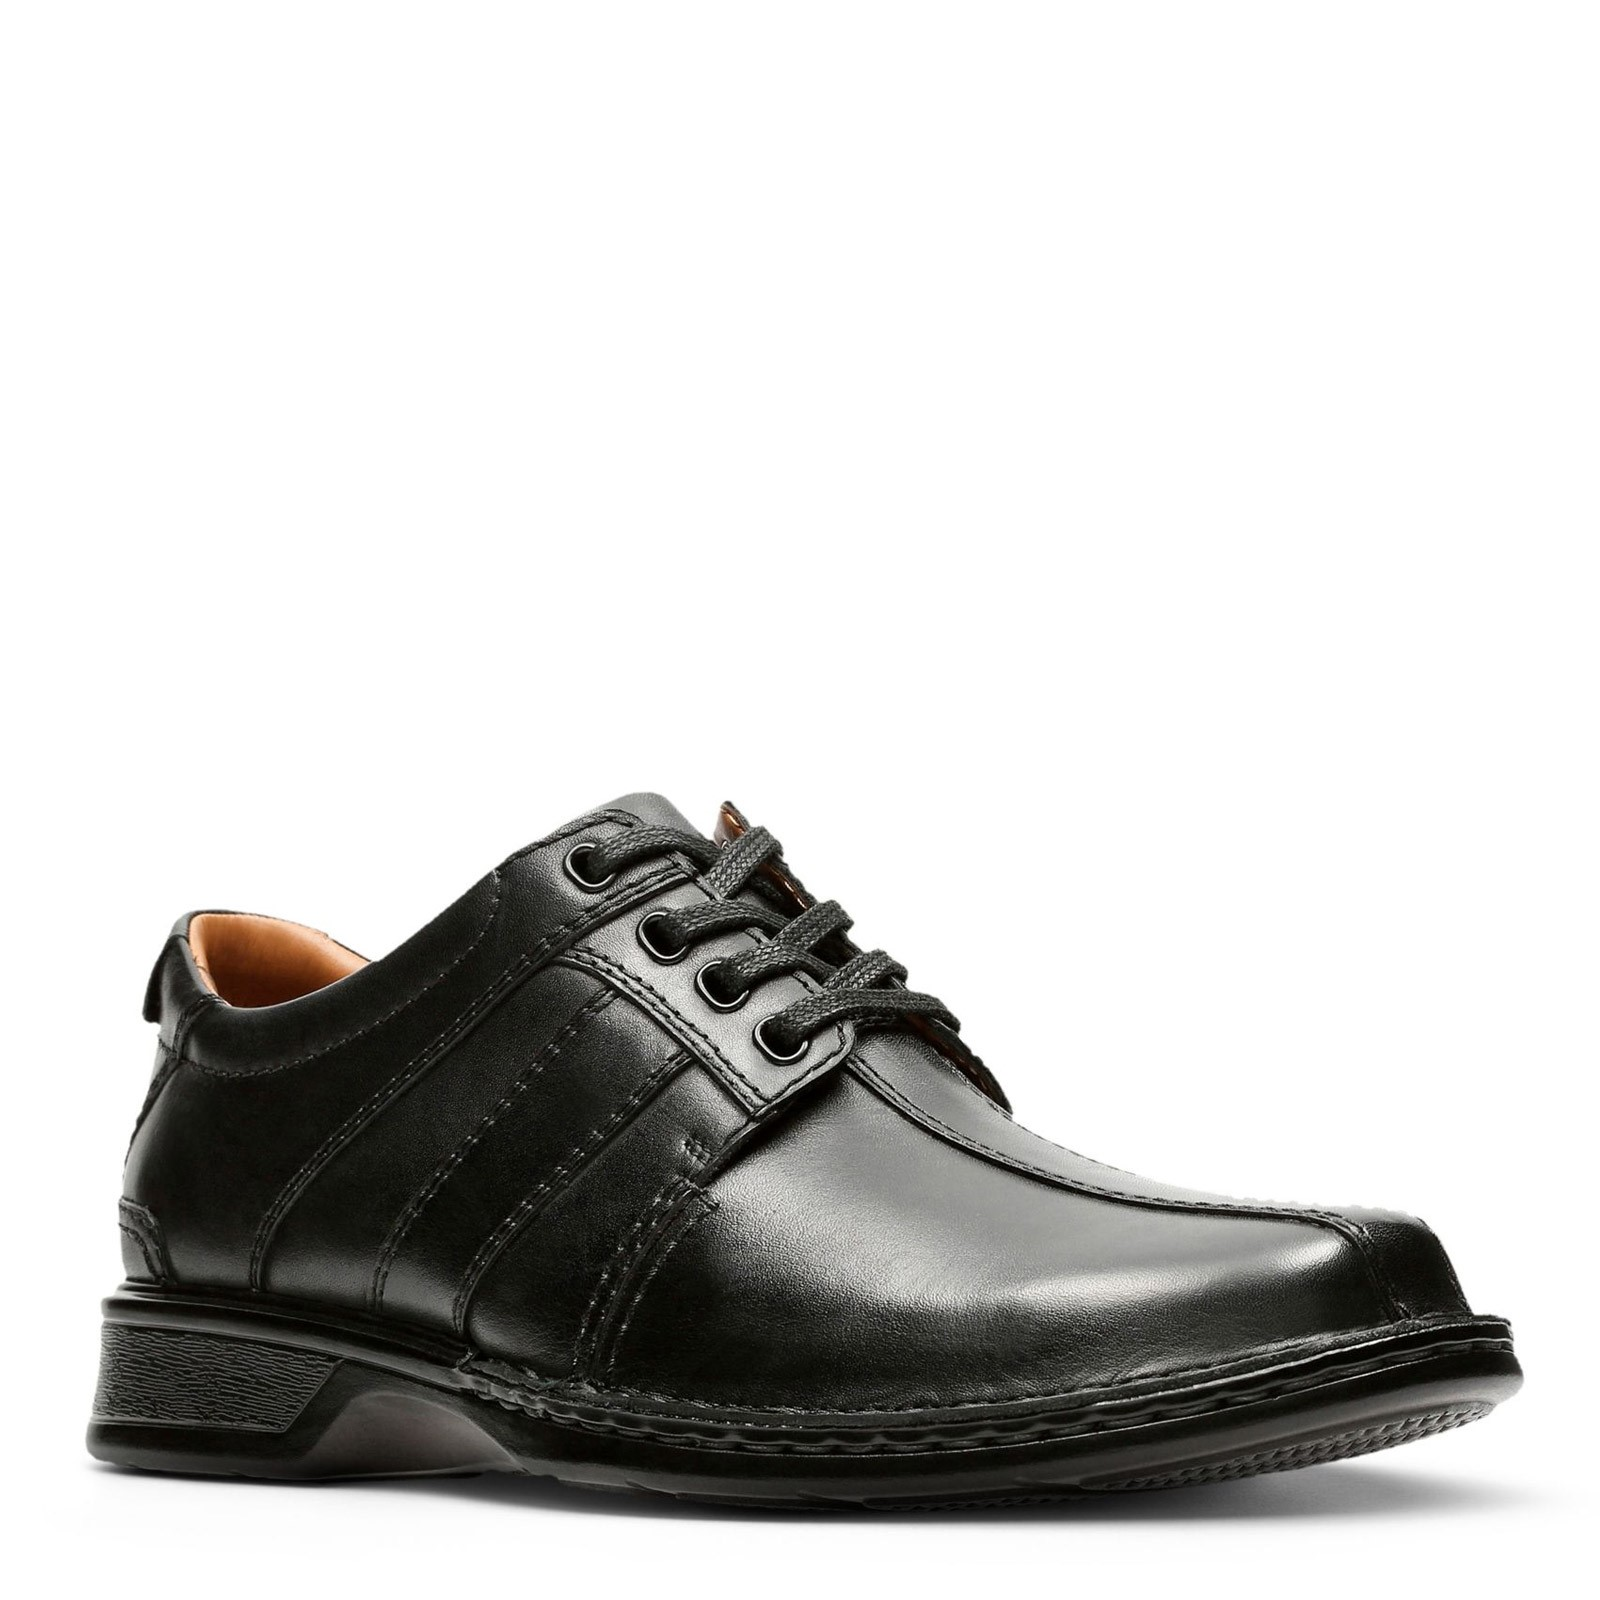 Men's Clarks, Touareg Vibe Oxford